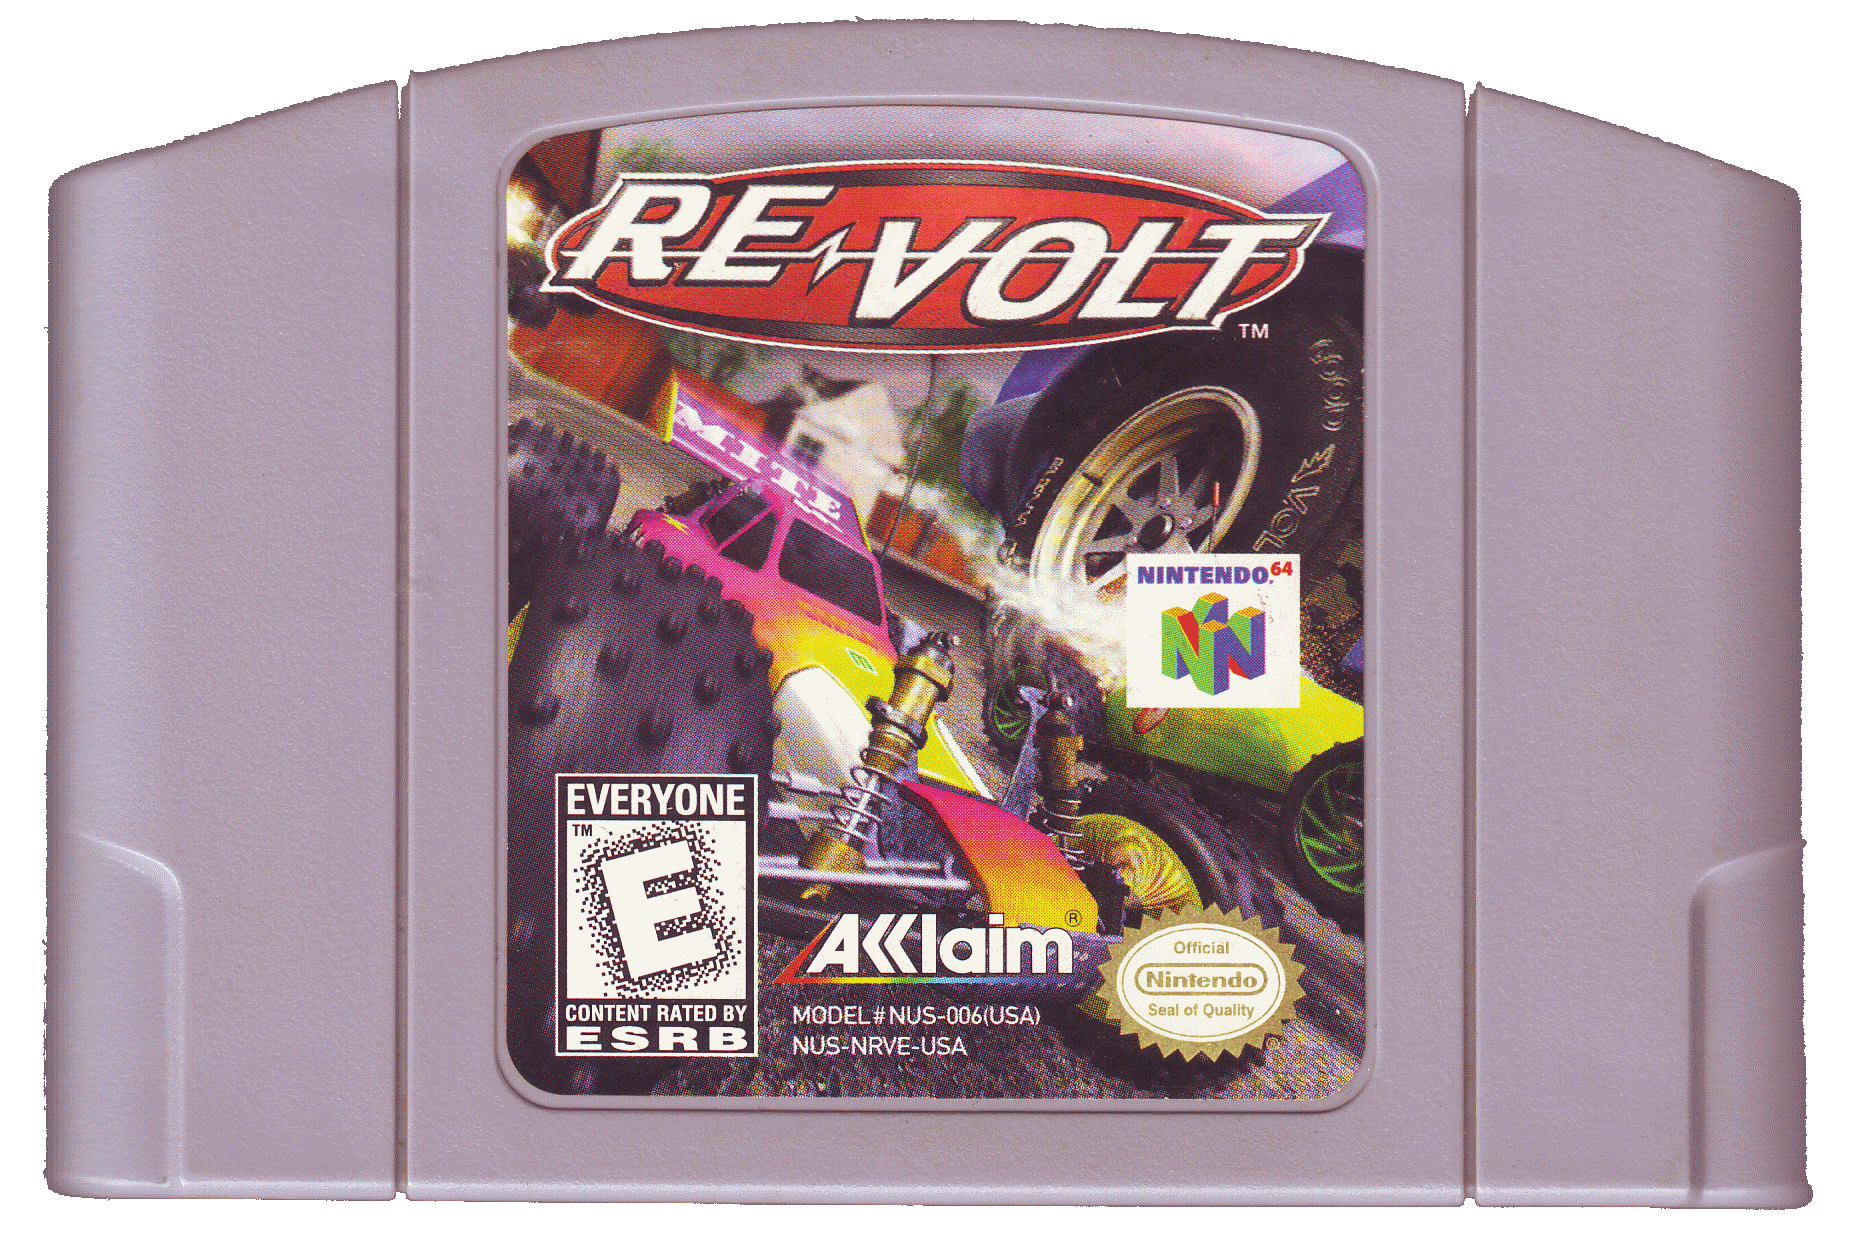 Re-volt 2 for pc – free download | play apps for pc.